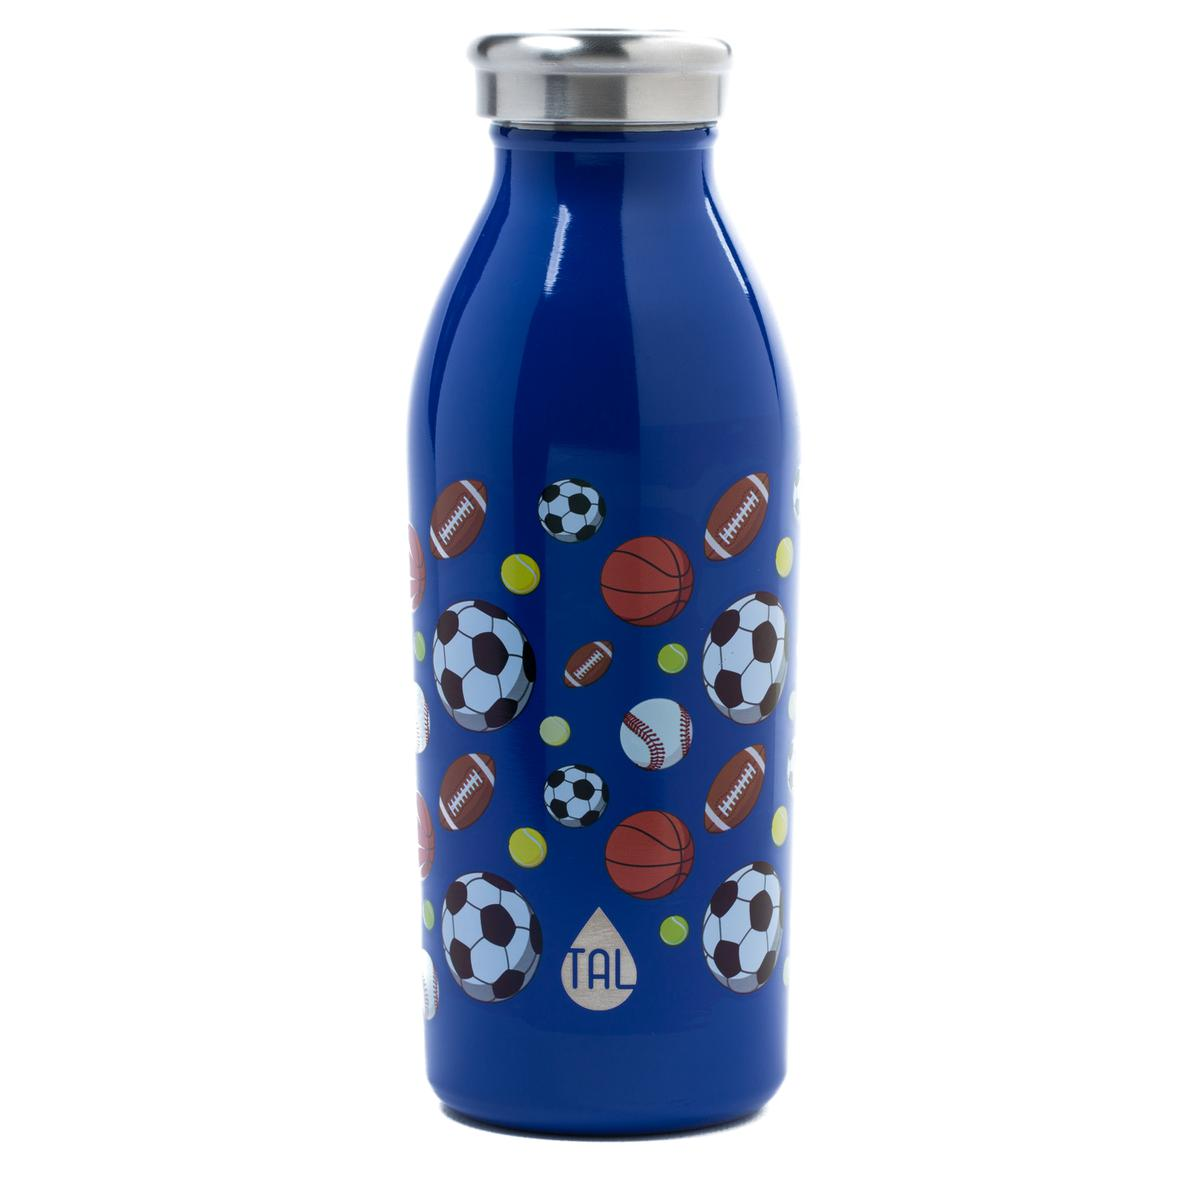 Tal Stainless Steel 12oz Double Wall Vacuum Insulated Modern Water Bottle- Unicorn Print